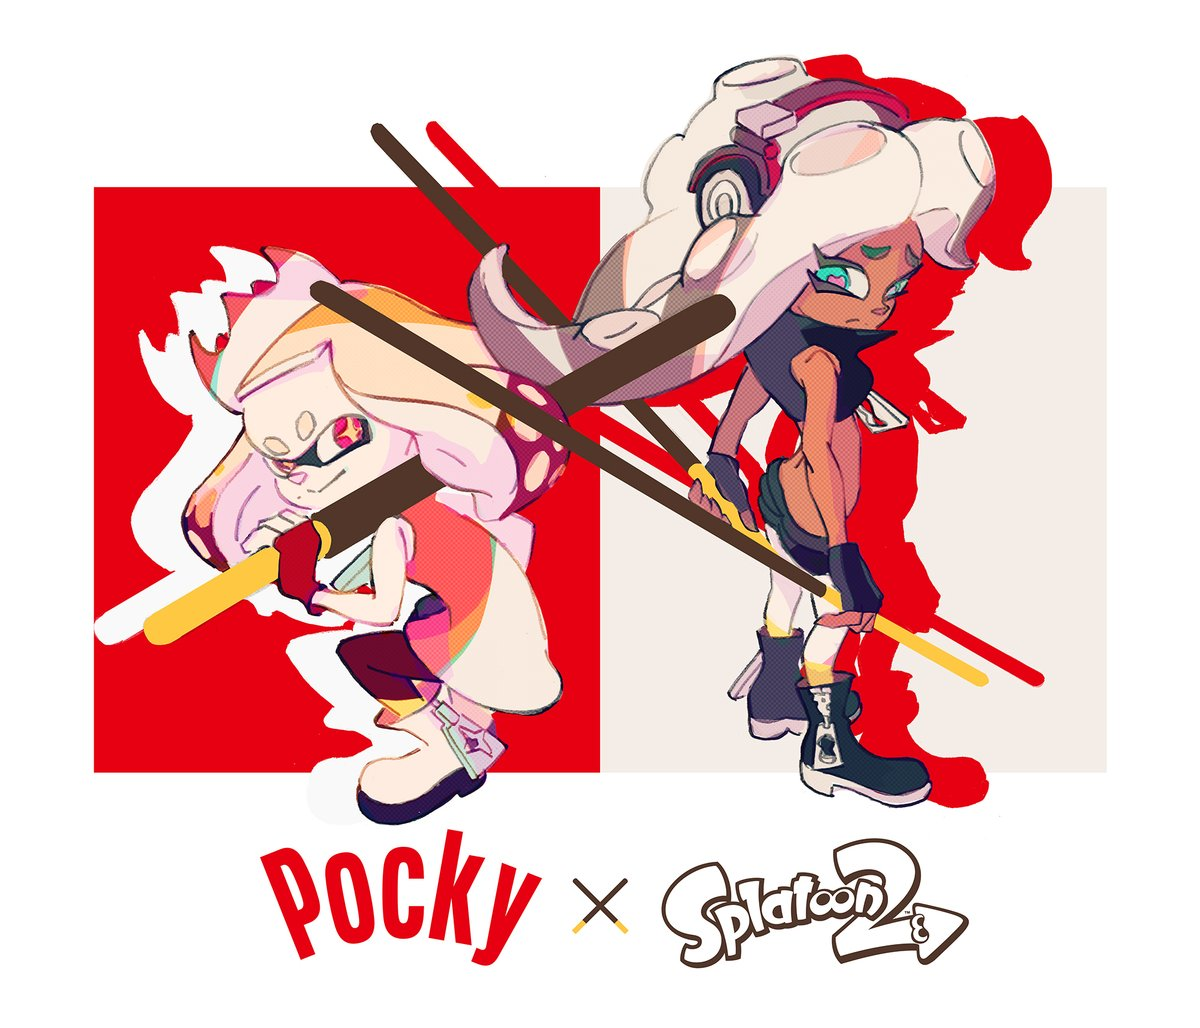 Nintendo shares another piece of artwork for the upcoming Splatoon 2 Pocky Splatfest